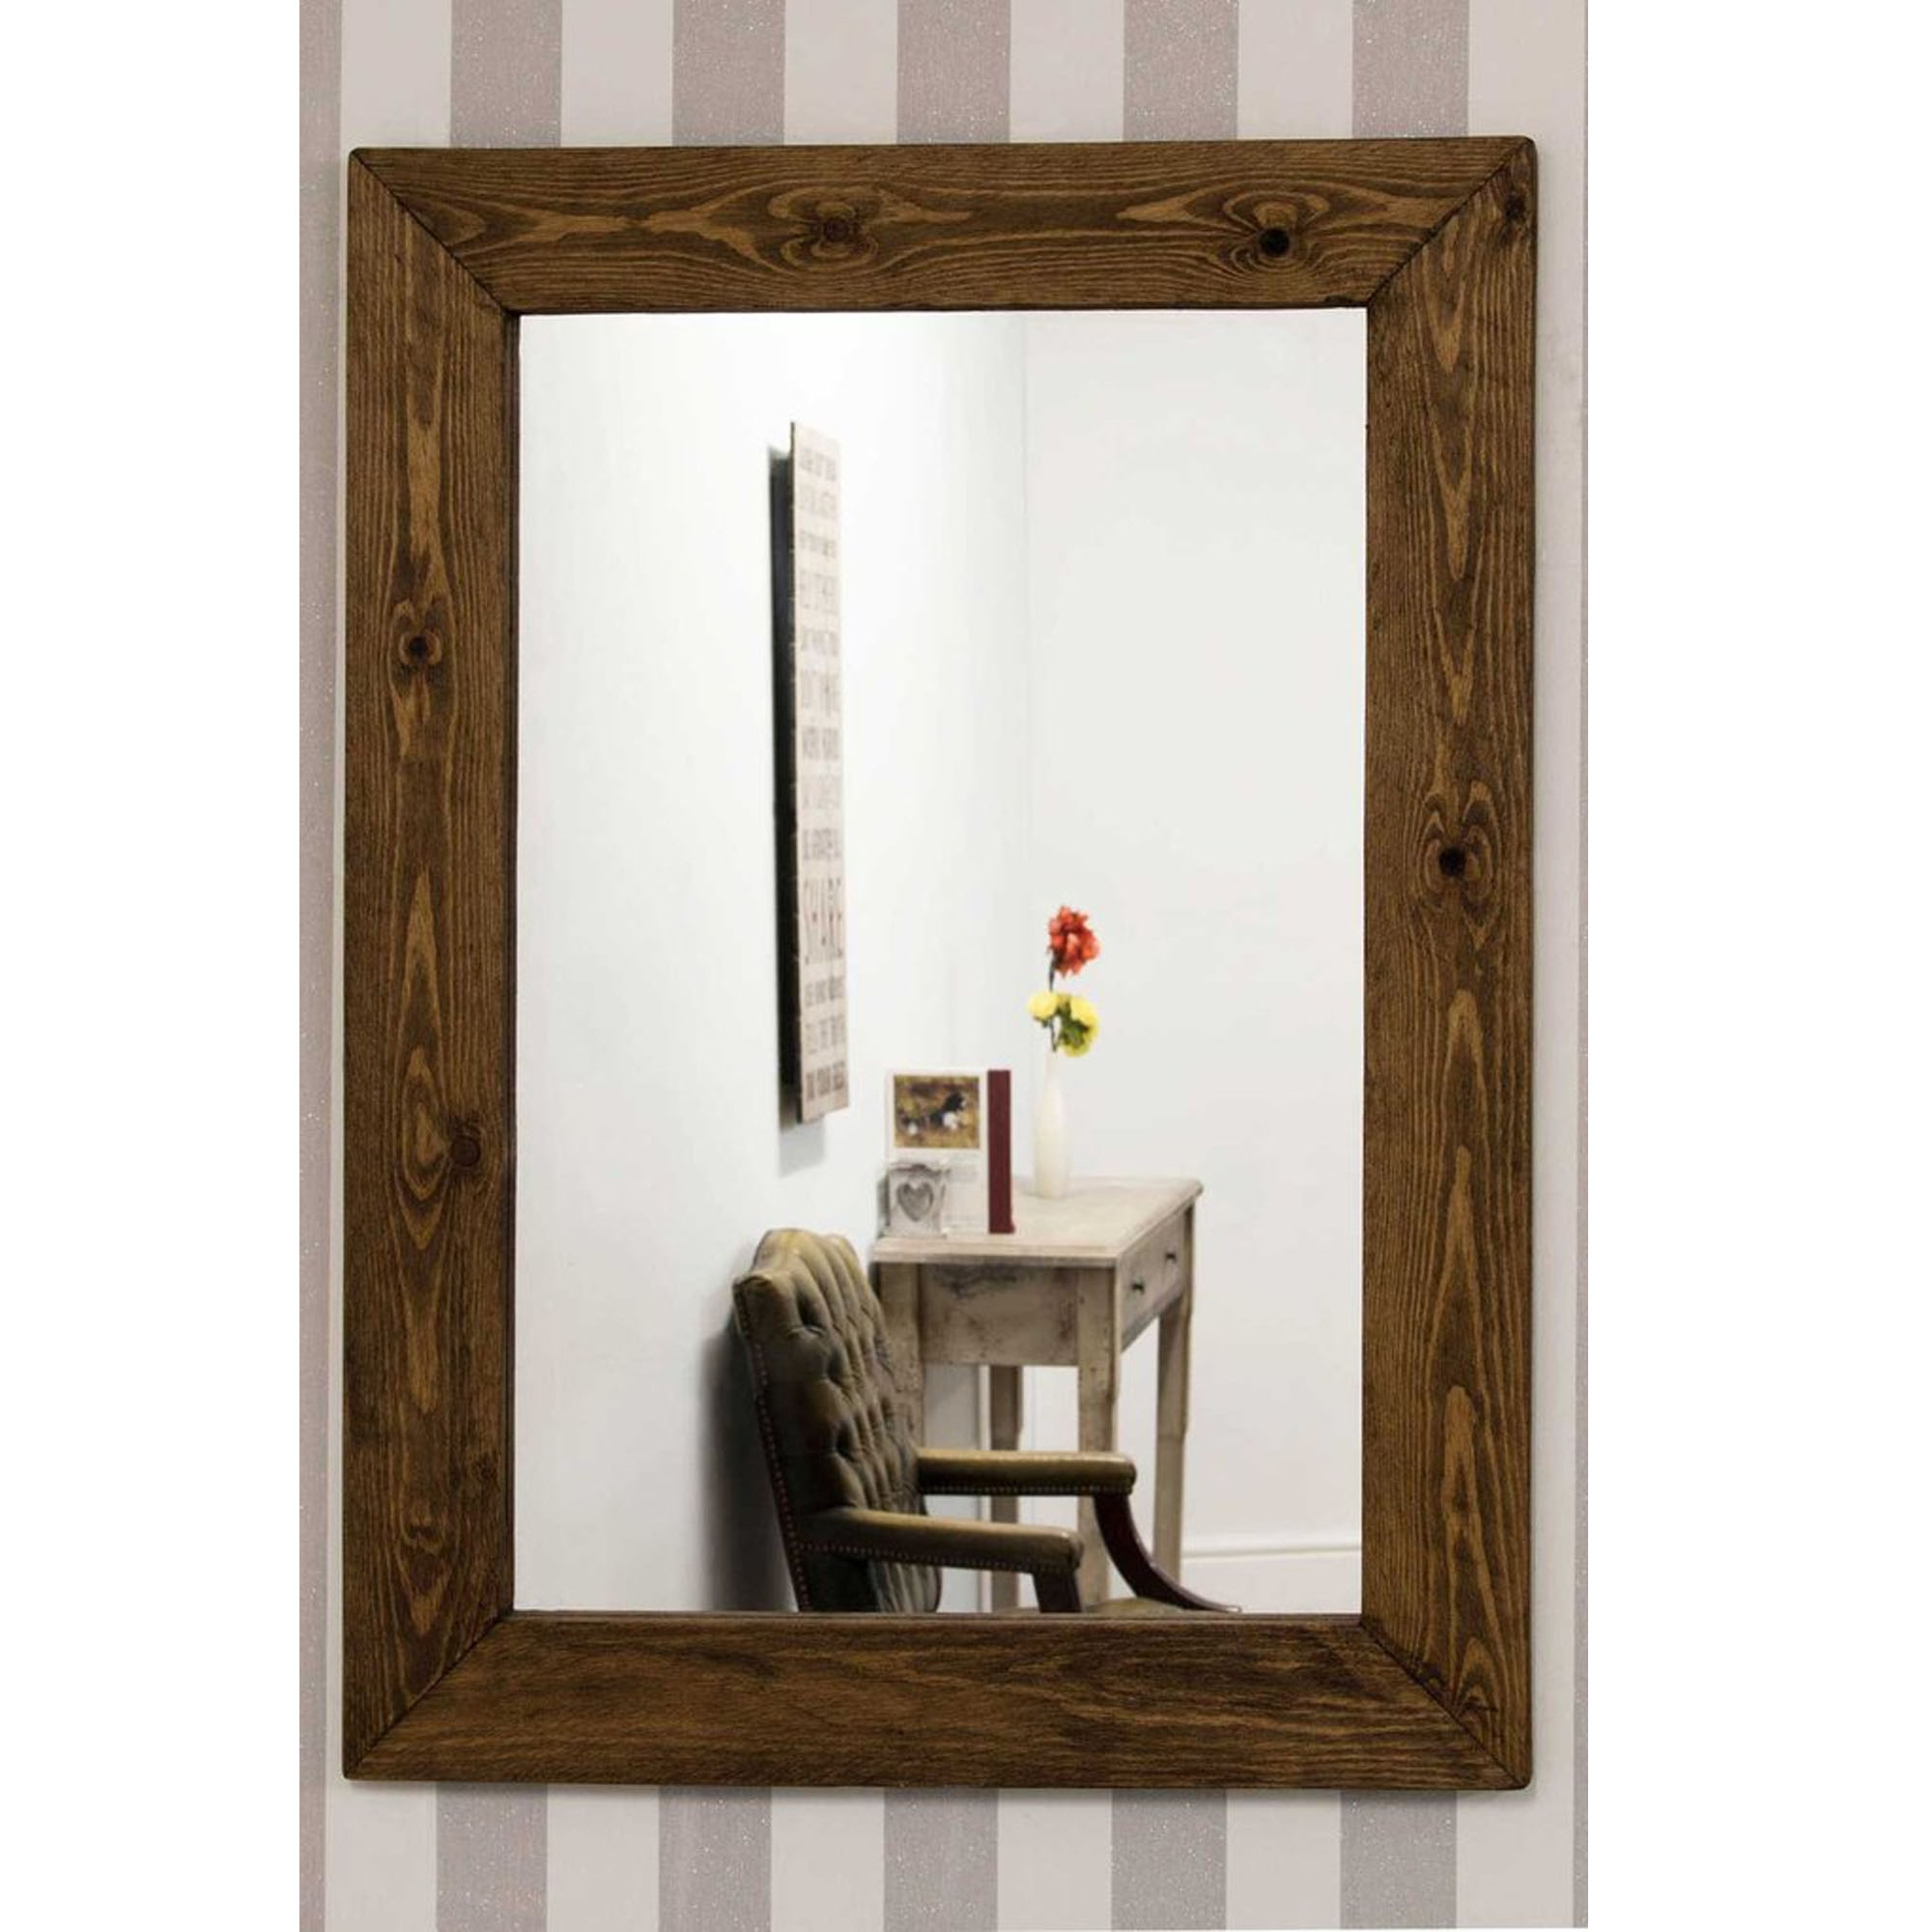 Small Wall Mirrors Throughout Most Up To Date Small Rustic Country House Rectangular Wall Mirror (View 6 of 20)